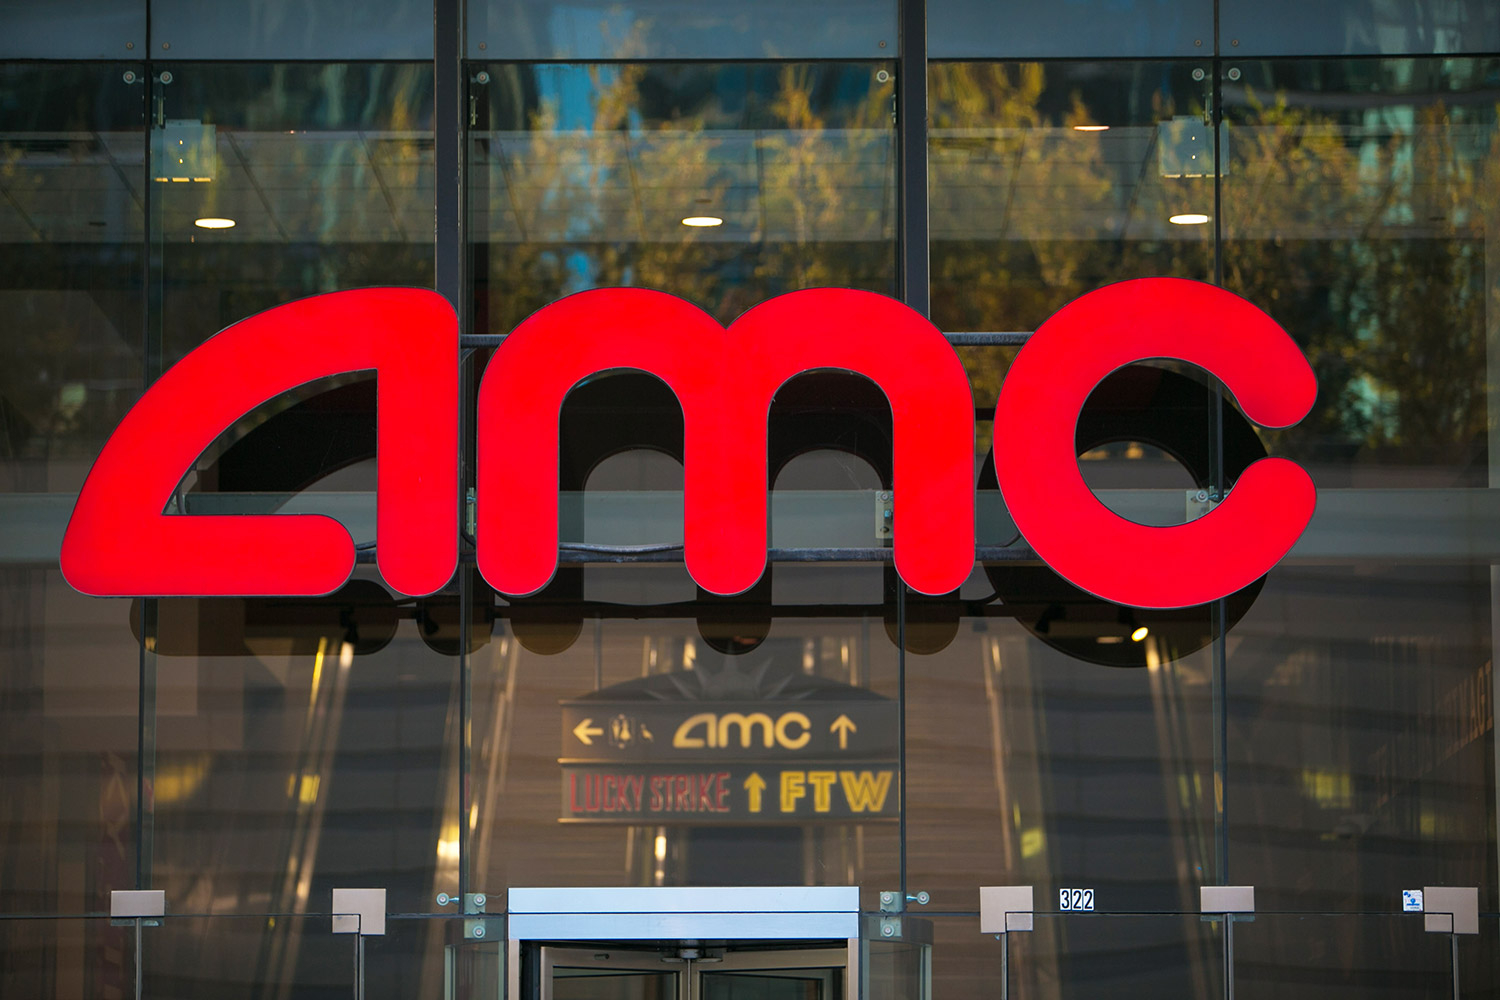 AMC-Groupon Partnership Sends Both Stocks Up